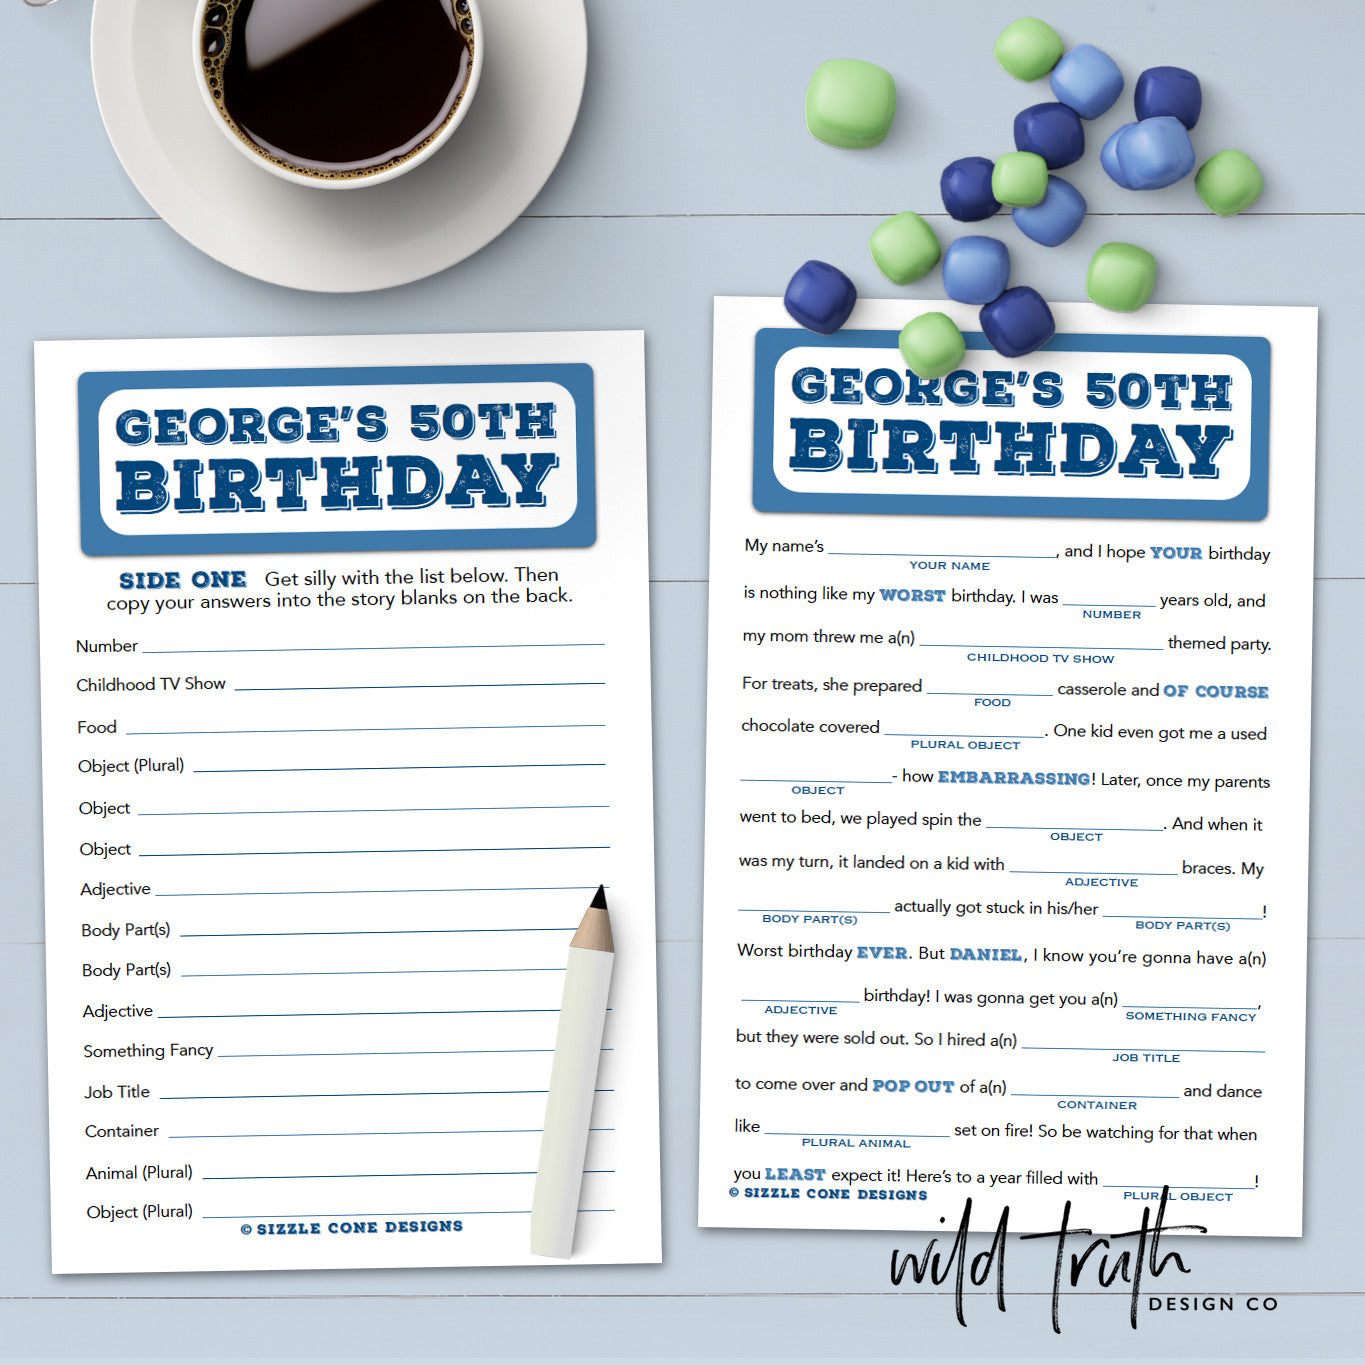 photo relating to Free Printable Mad Libs for Adults called Birthday Outrageous Lib For Grownups - Tailored Social gathering Recreation - Printable #100A - Wild Reality Design and style Co